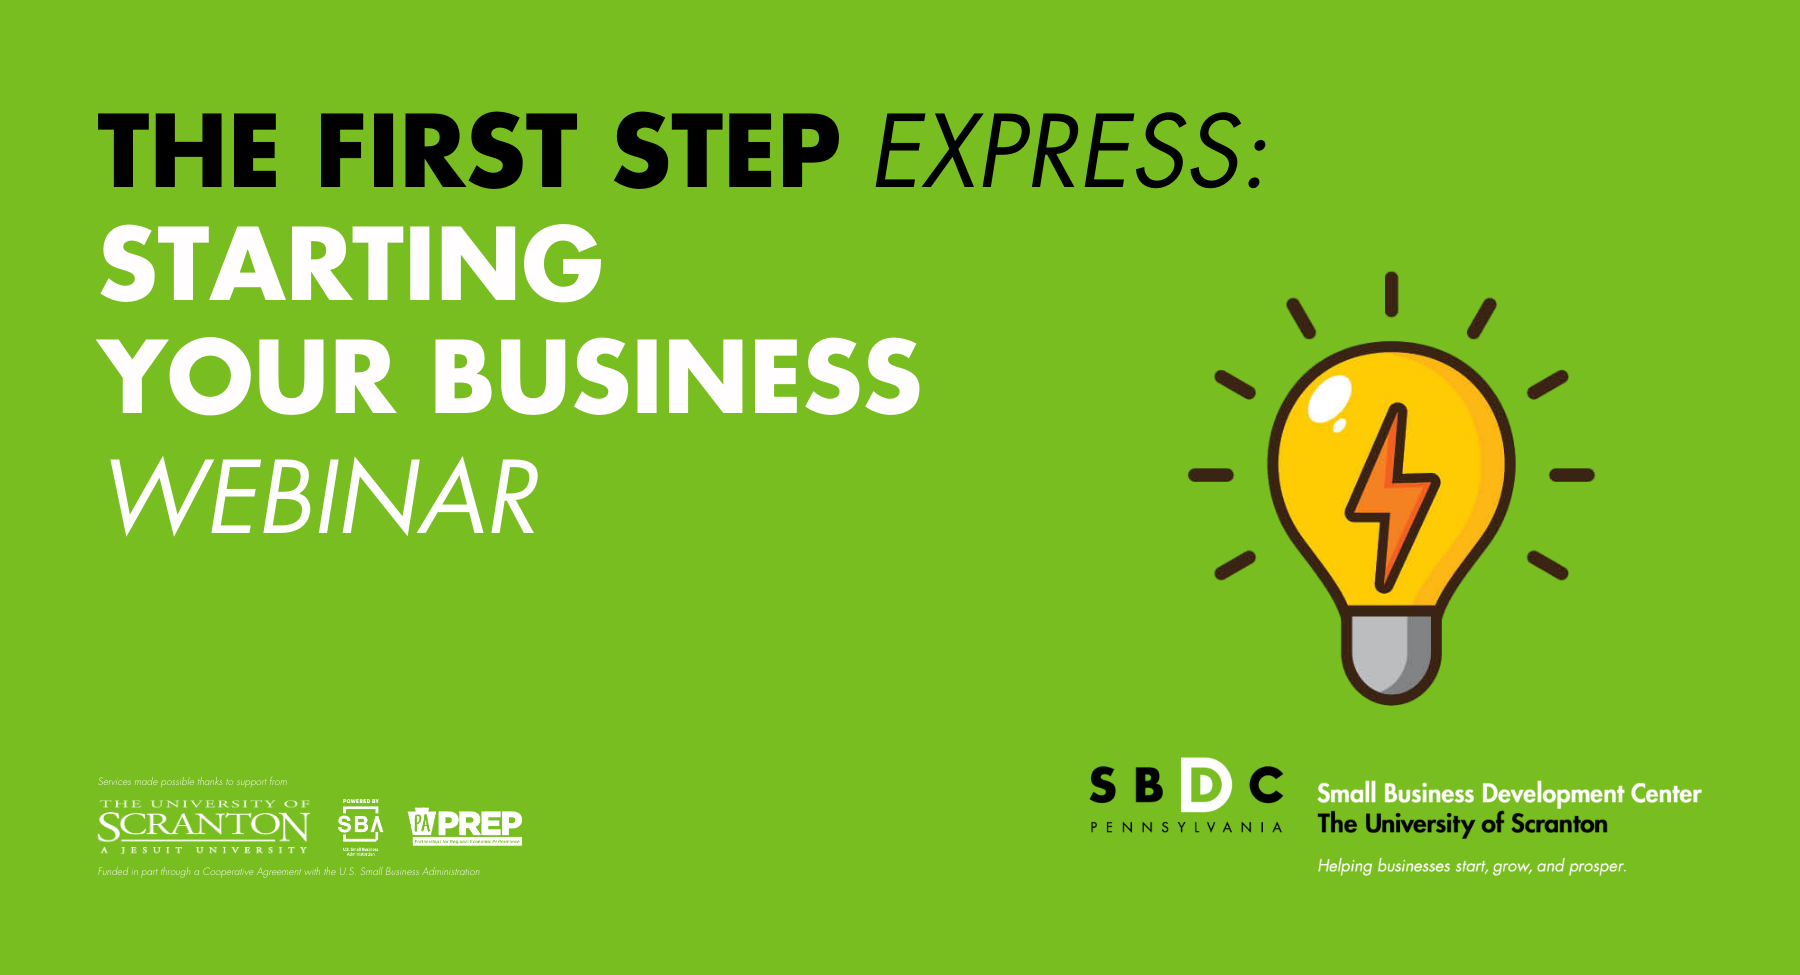 The First Step Express: Starting Your Business (Webinar)